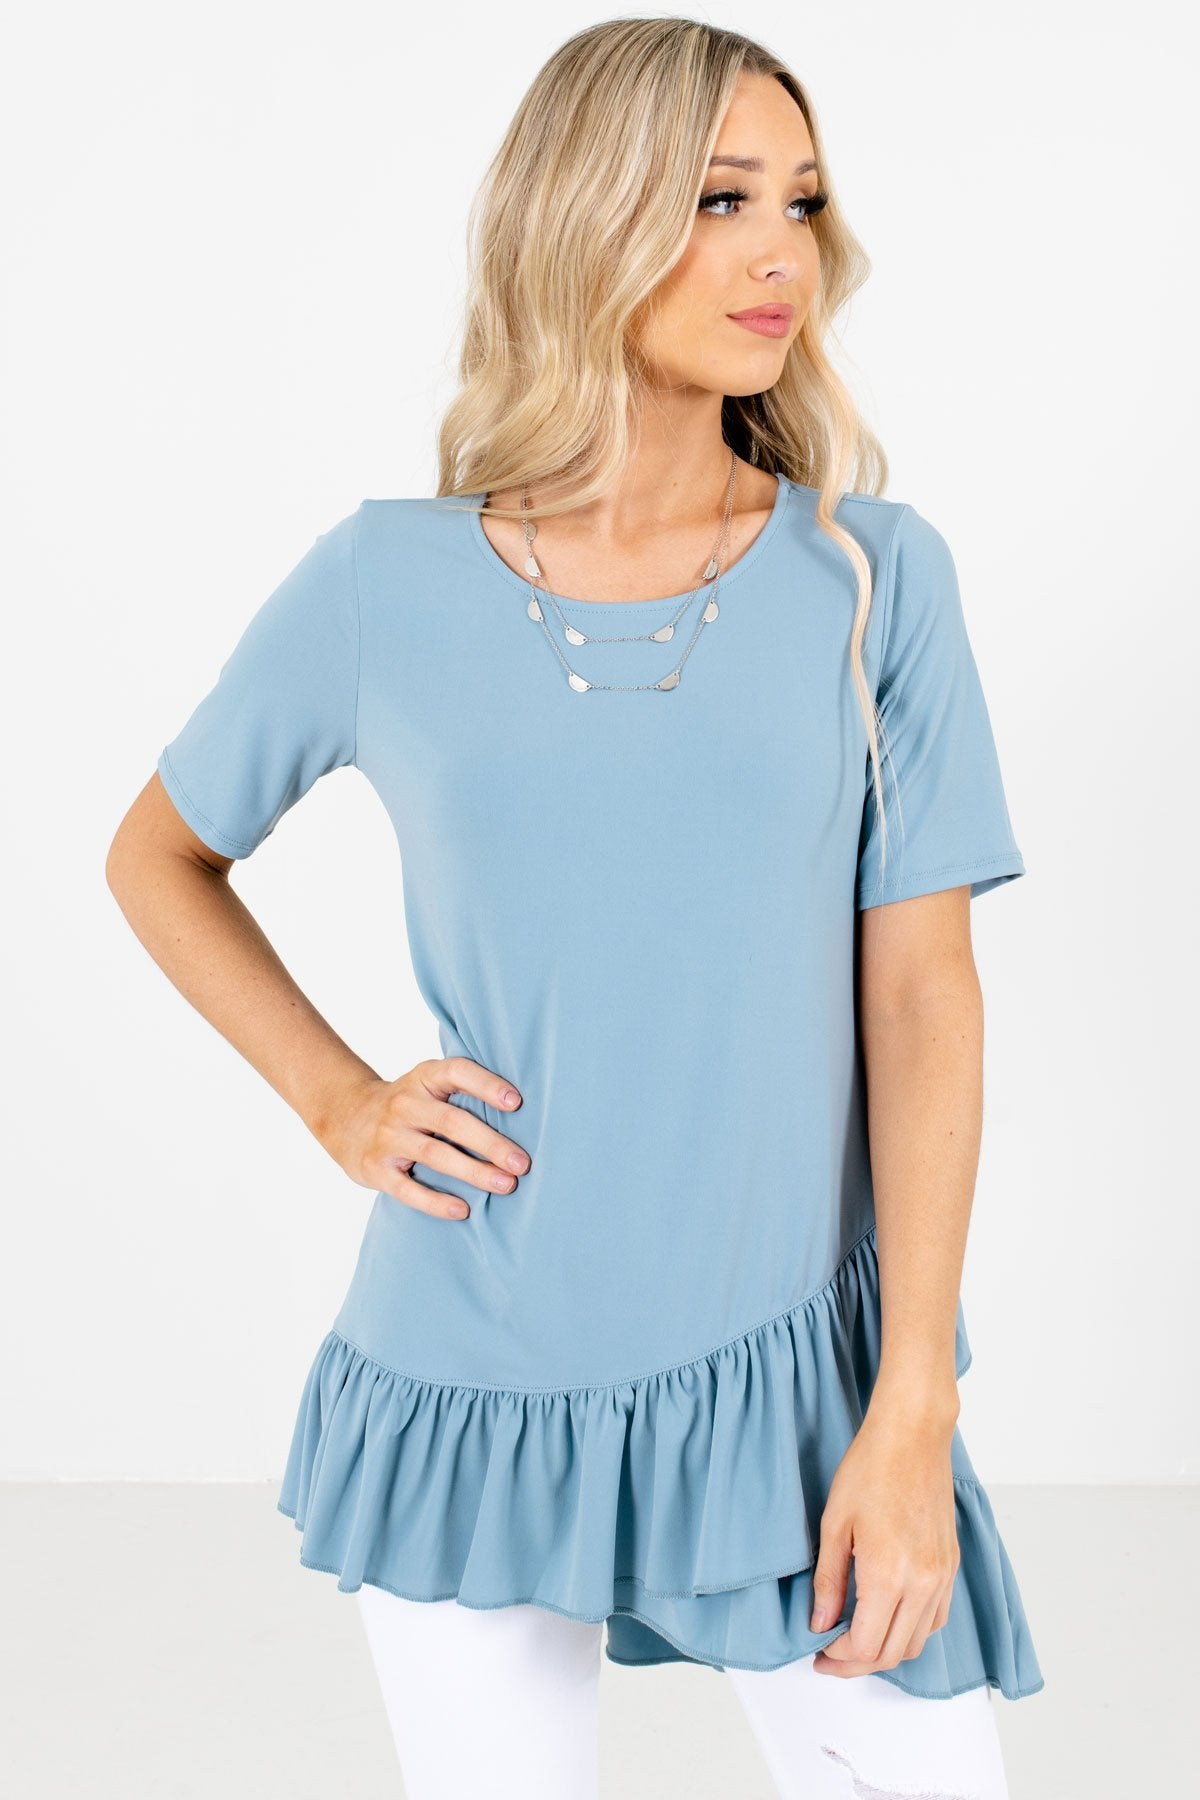 Blue Peplum Style Hem Boutique Tops for Women